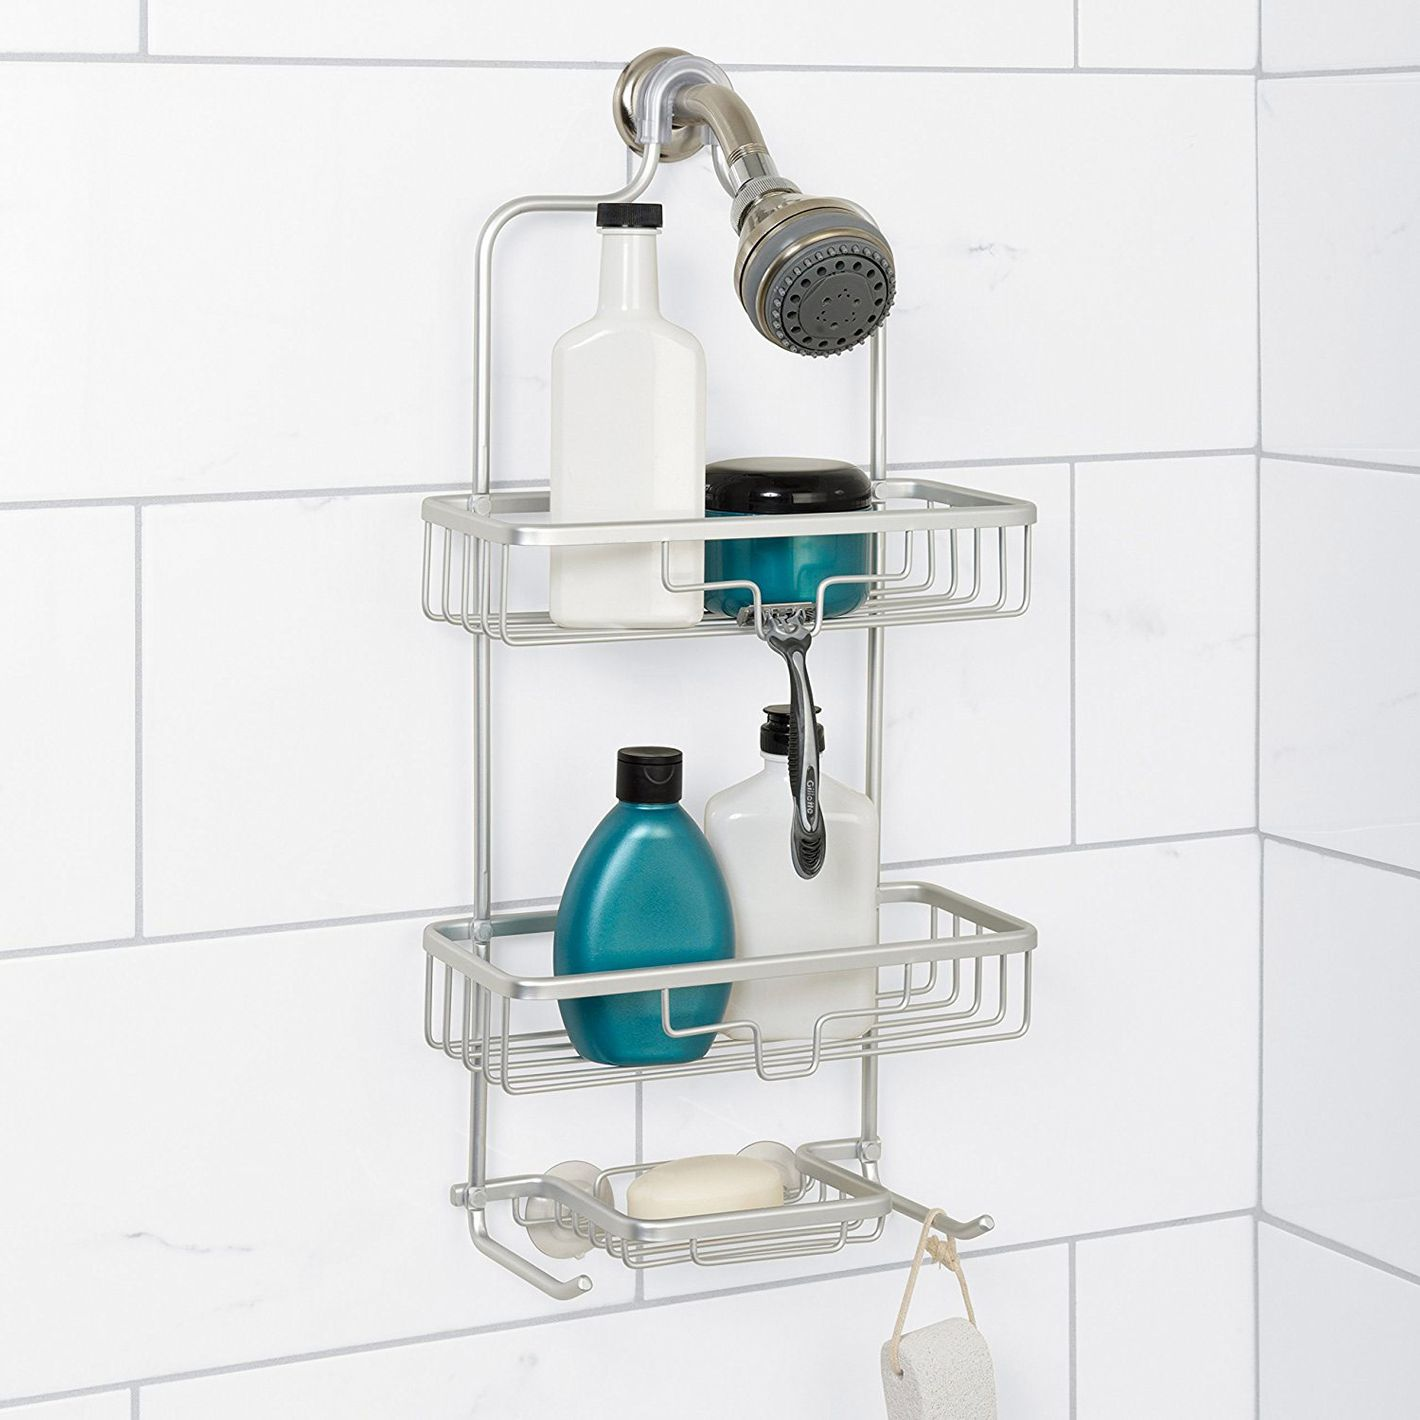 Delicieux Zenna Home 7402AL, NeverRust Aluminum Shower Caddy, Satin Chrome